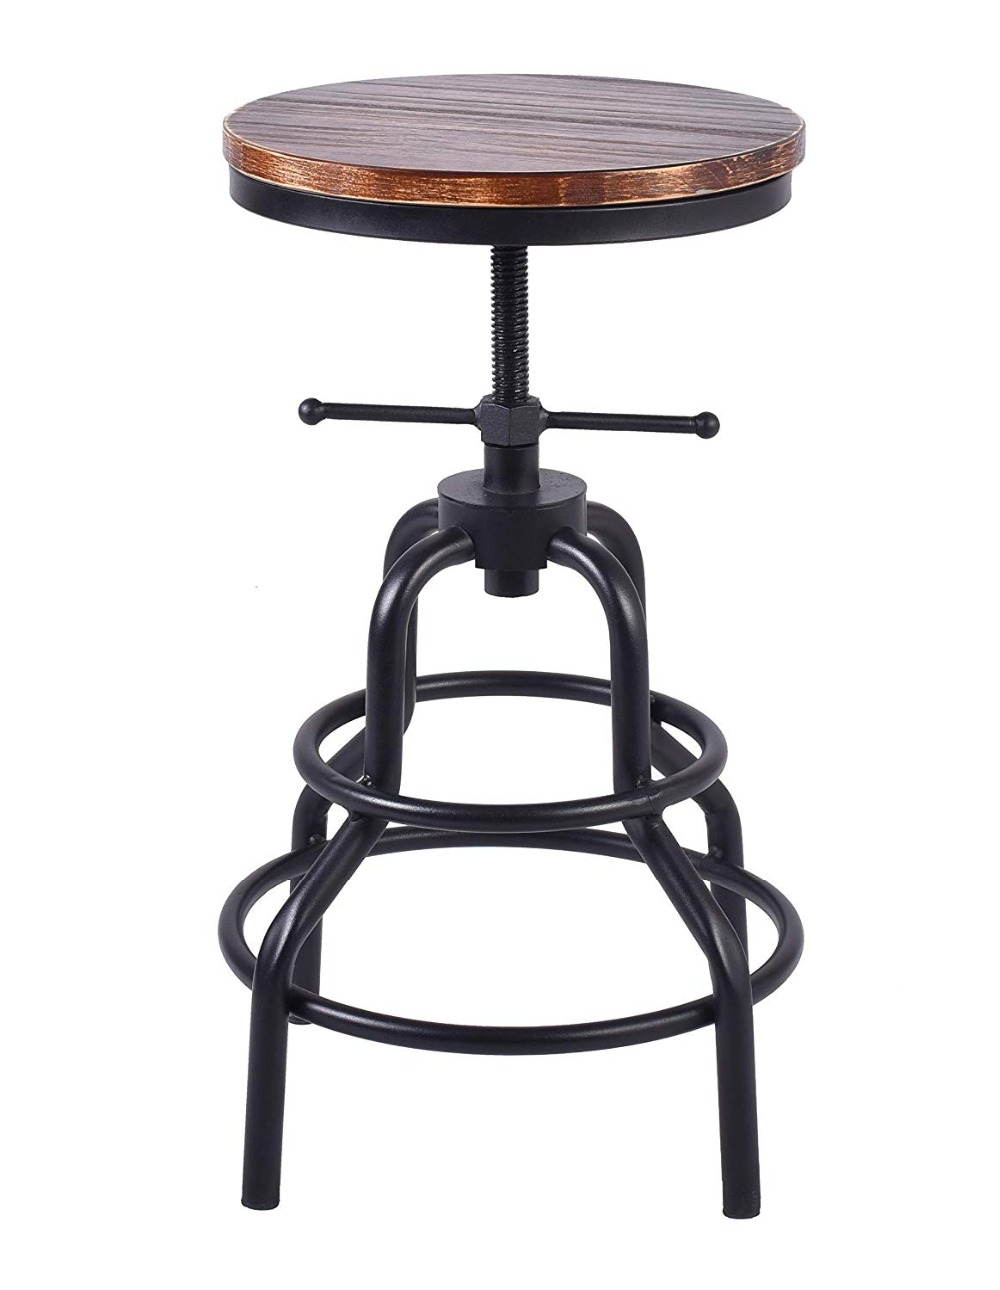 Vintage Industrial Bar Stools Mansard Adjustable Height Swivel Bar Stool With Pine Wood Bar Chair Metal Black Chair